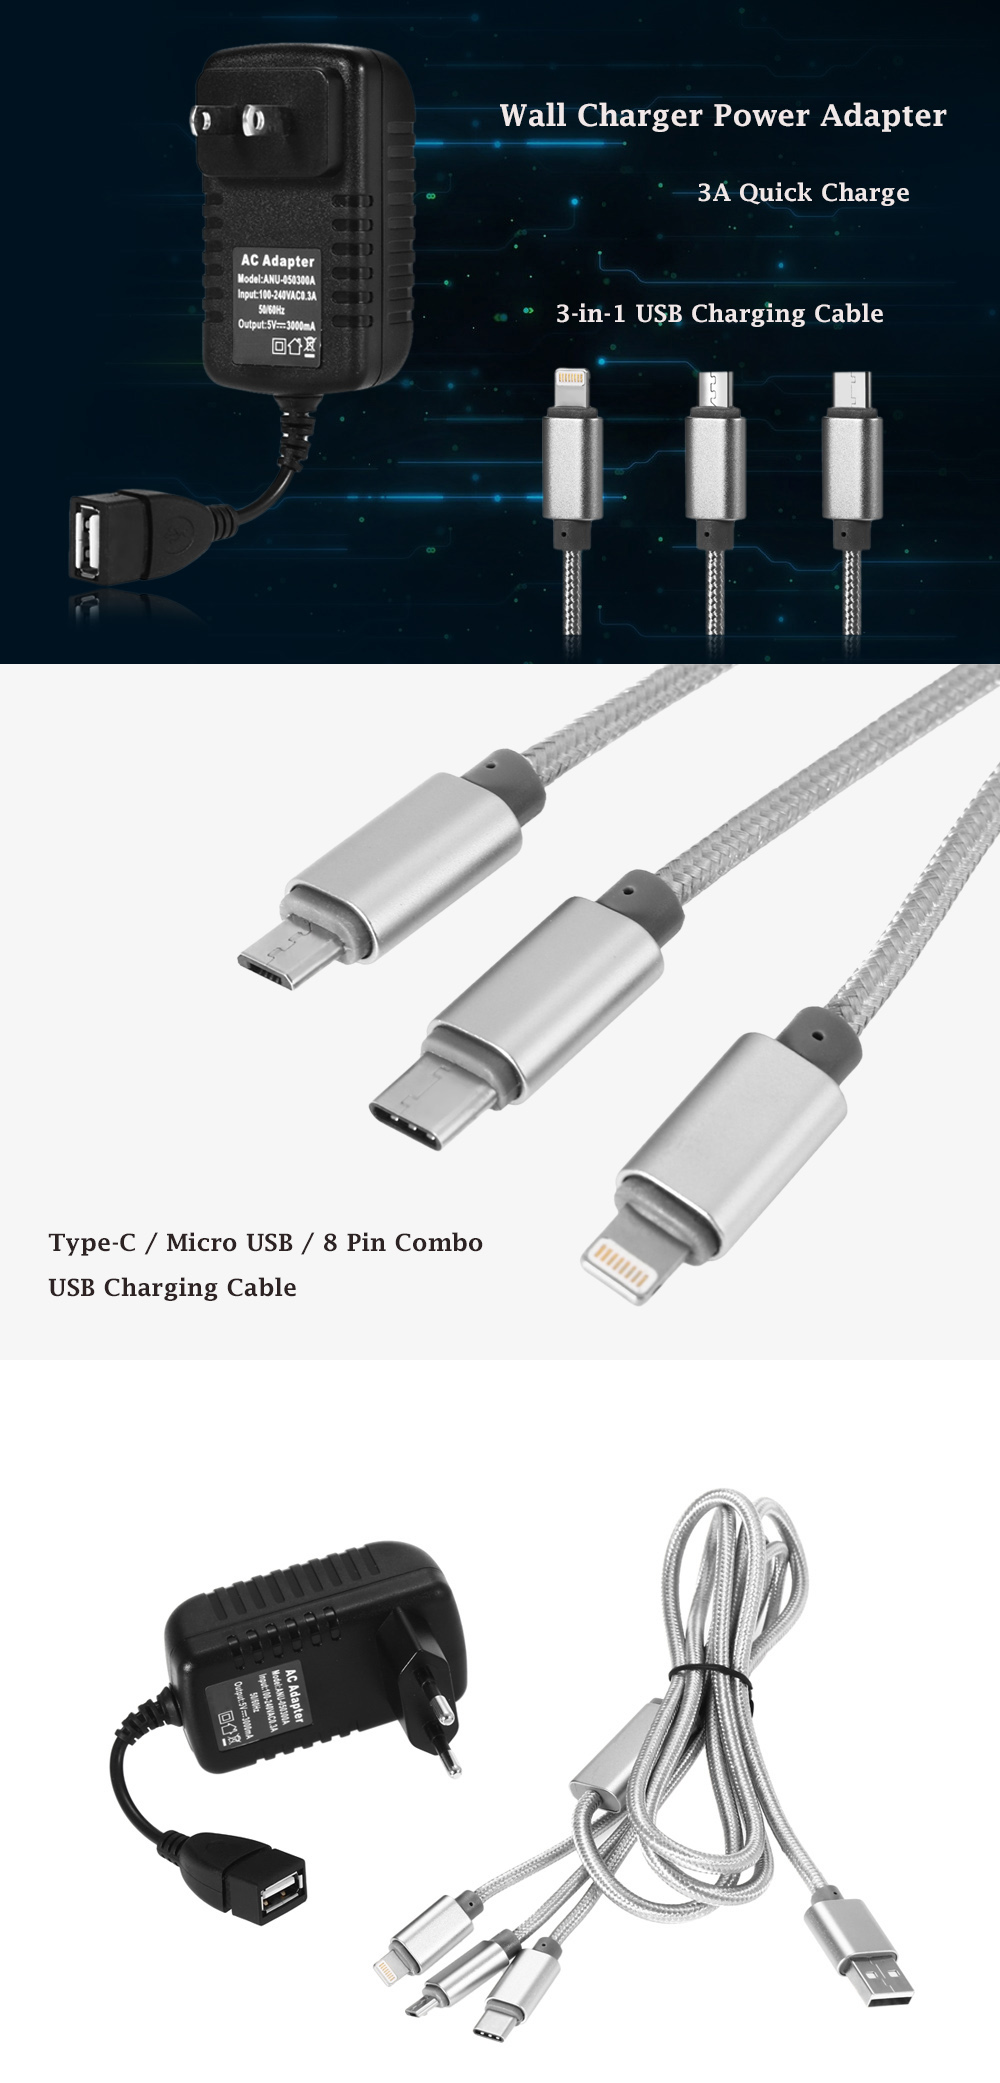 3A Quick Charge Wall Charger Power Adapter with 3-in-1 USB Charging Cable Micro USB 8 Pin Type-C Interface